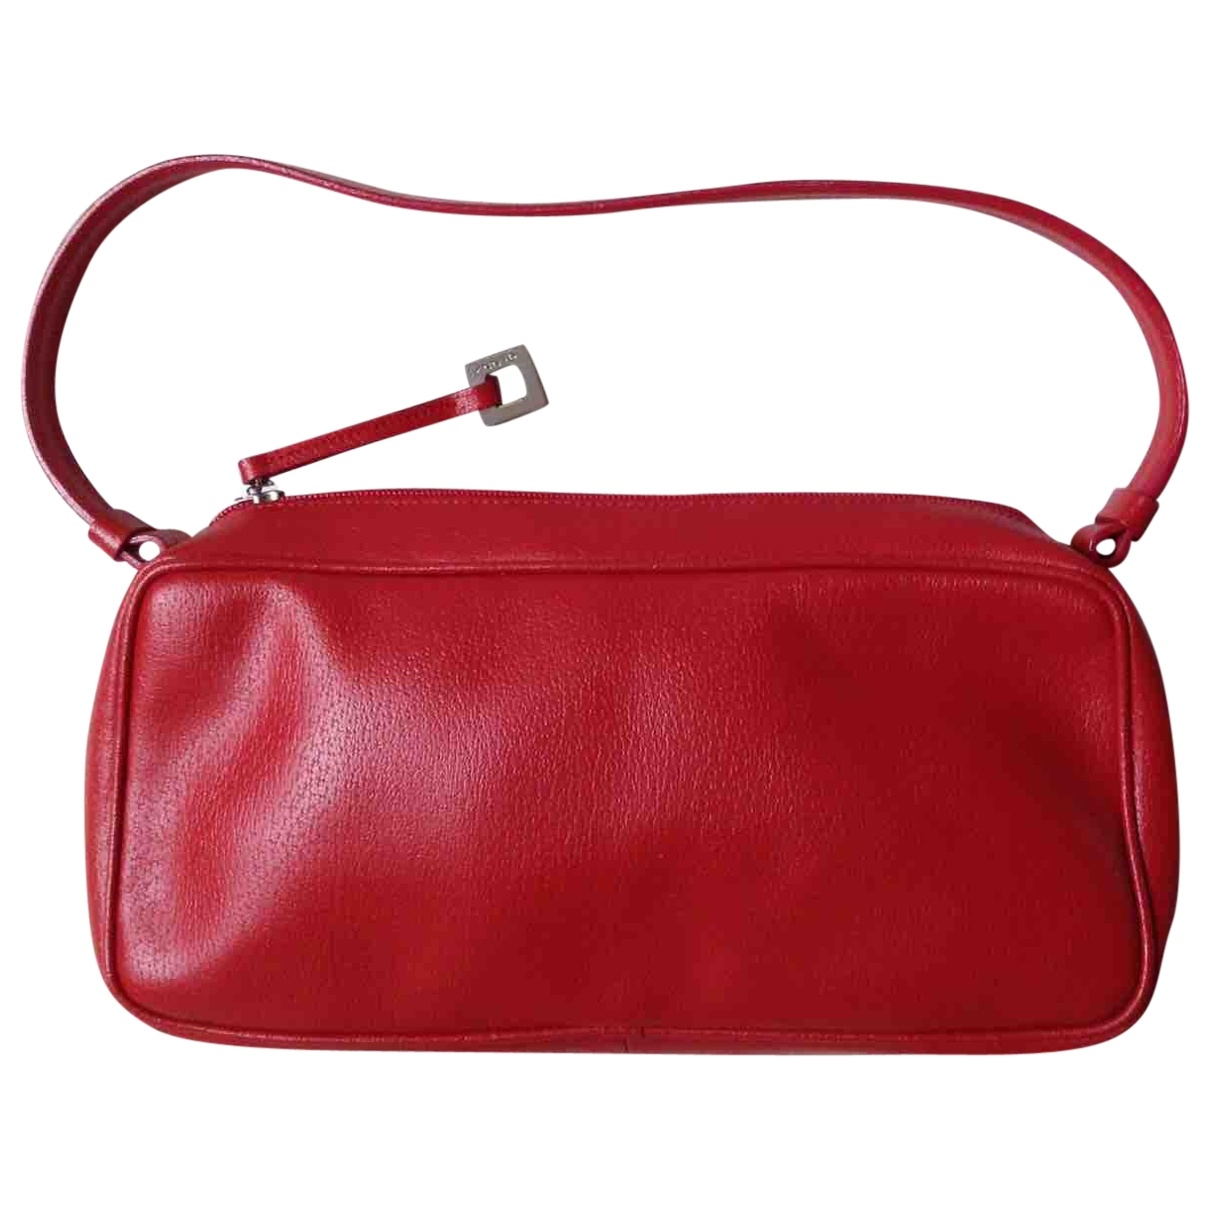 Genny \N Red Leather Clutch bag for Women \N